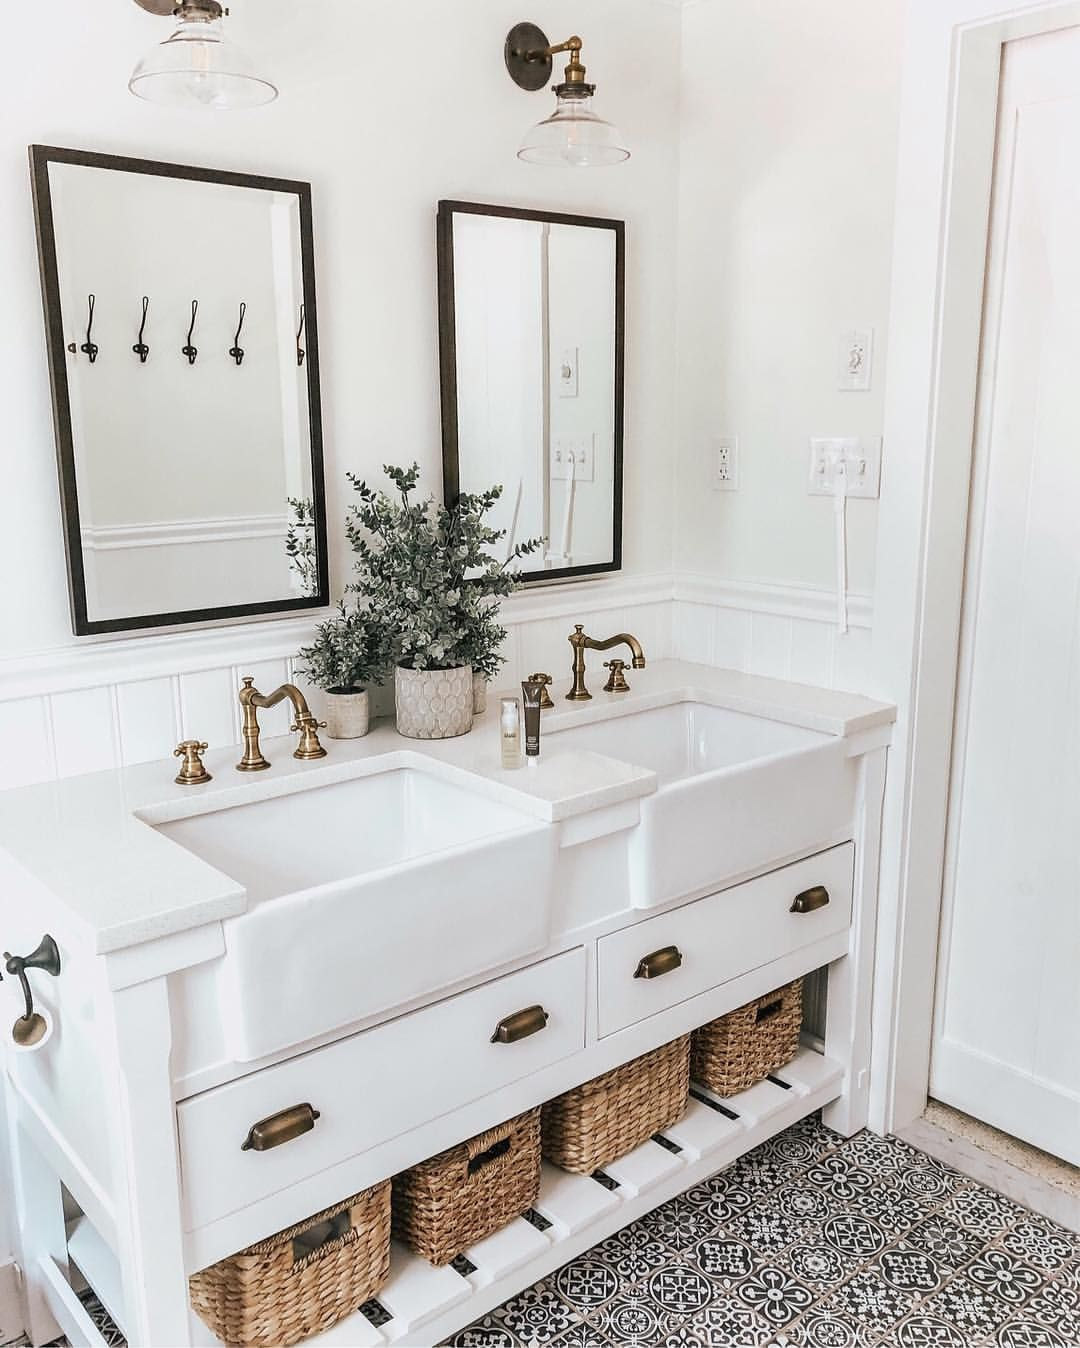 Let S Talk About Your Absolute Must Have Skincare Products What Are They I Recently Fell In Love Farmhouse Bathroom Decor Bathrooms Remodel Bathroom Decor